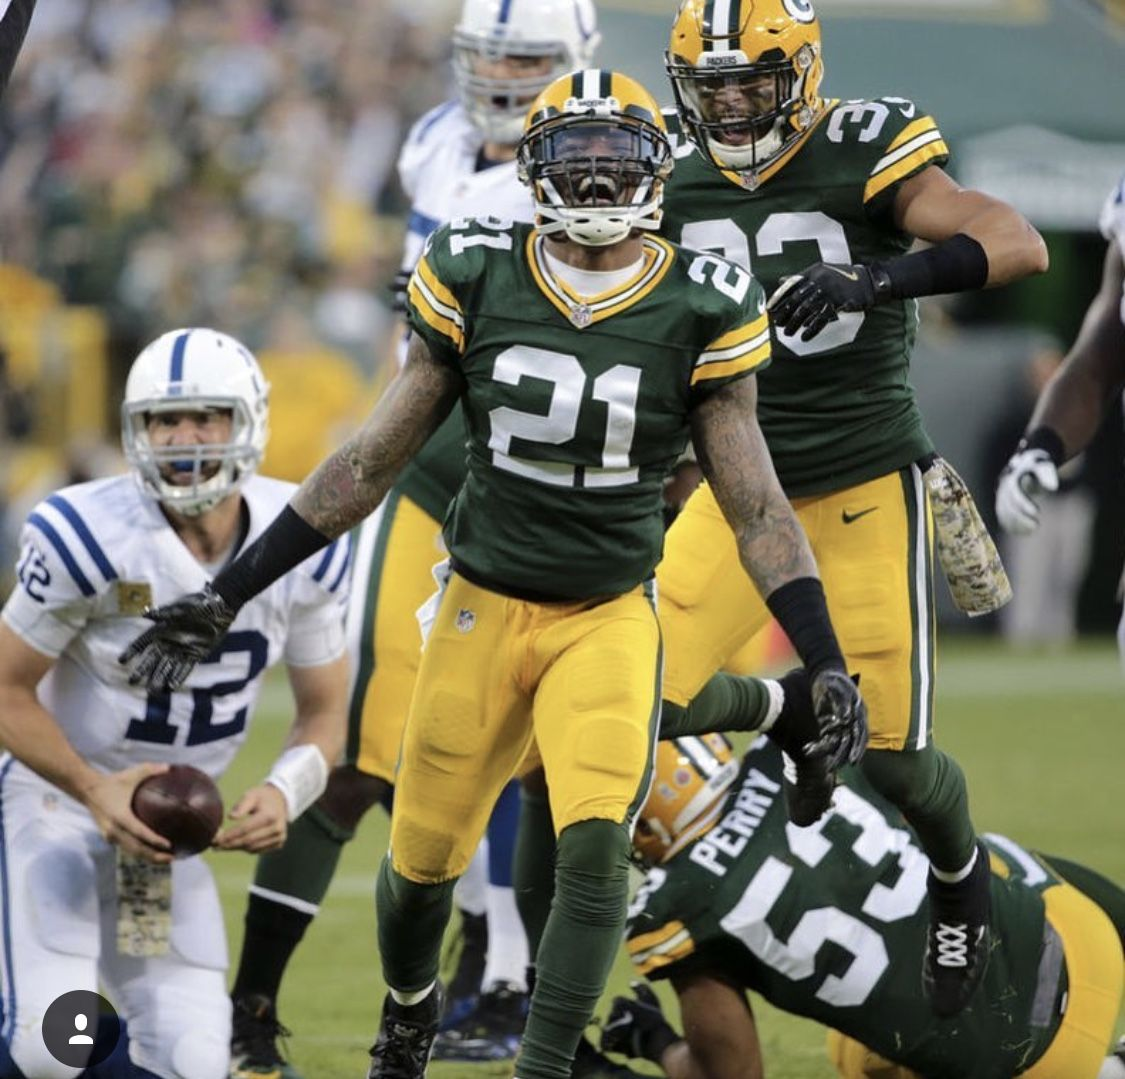 Pin By Alejandro Valtierra On Packers Green Bay Packers Packers Football Packers Fan